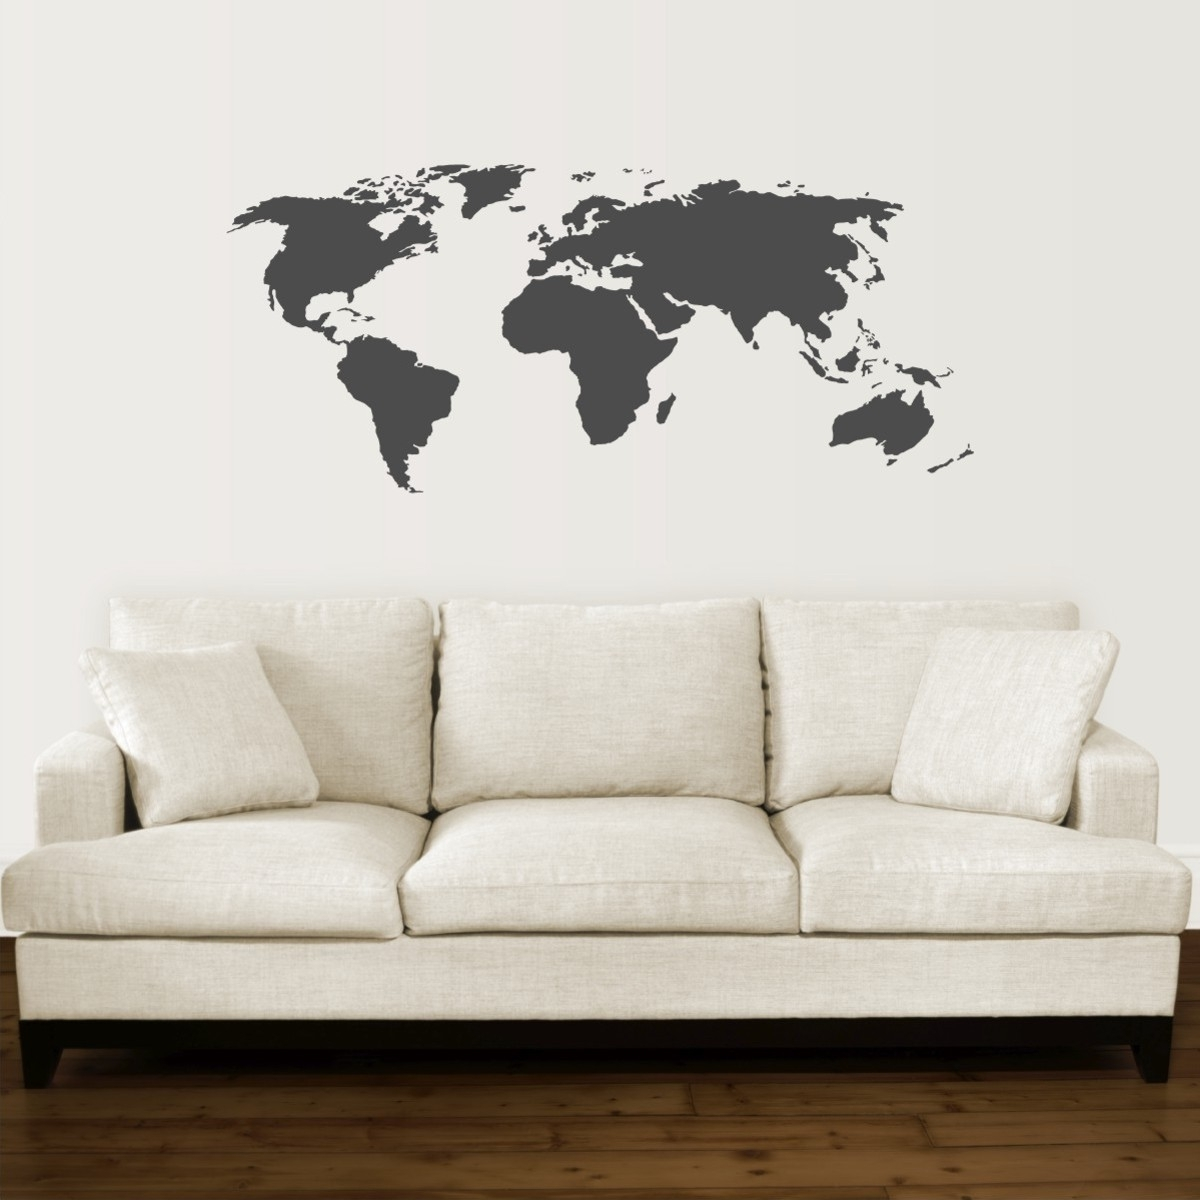 17 Cool Ideas For World Map Wall Art – Live Diy Ideas Pertaining To Cool Map Wall Art (View 2 of 20)